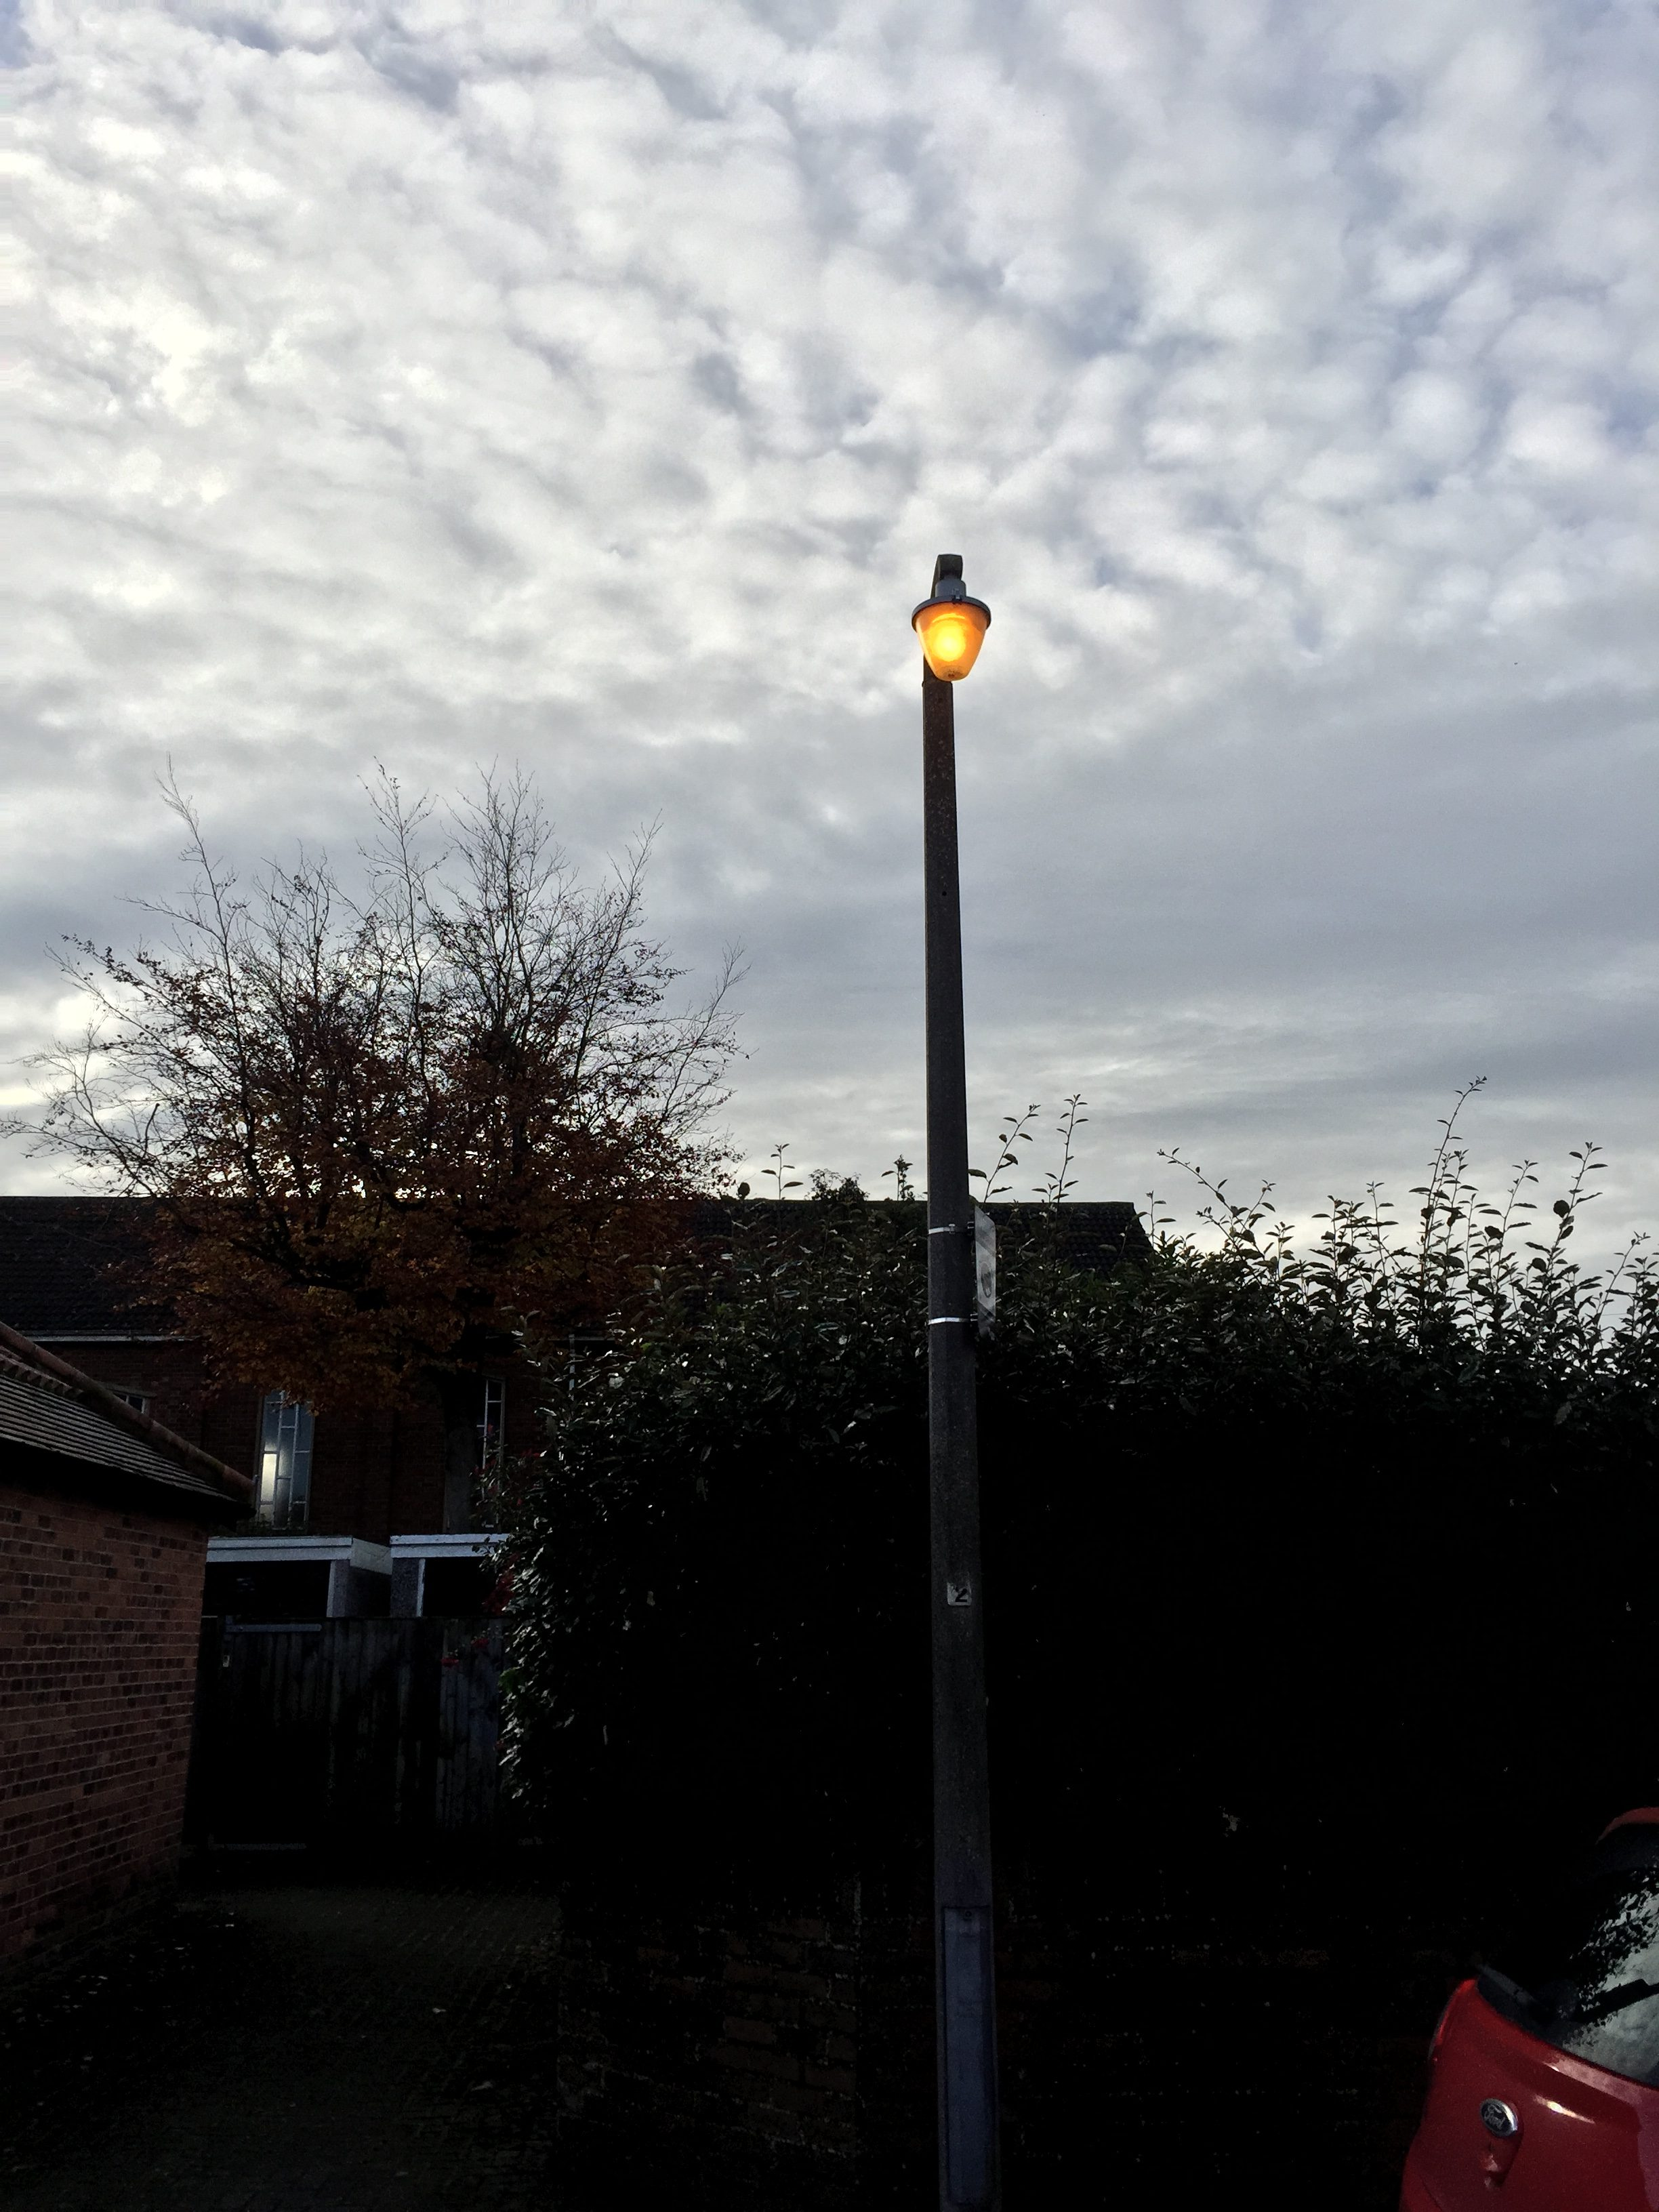 and day burnign street lights